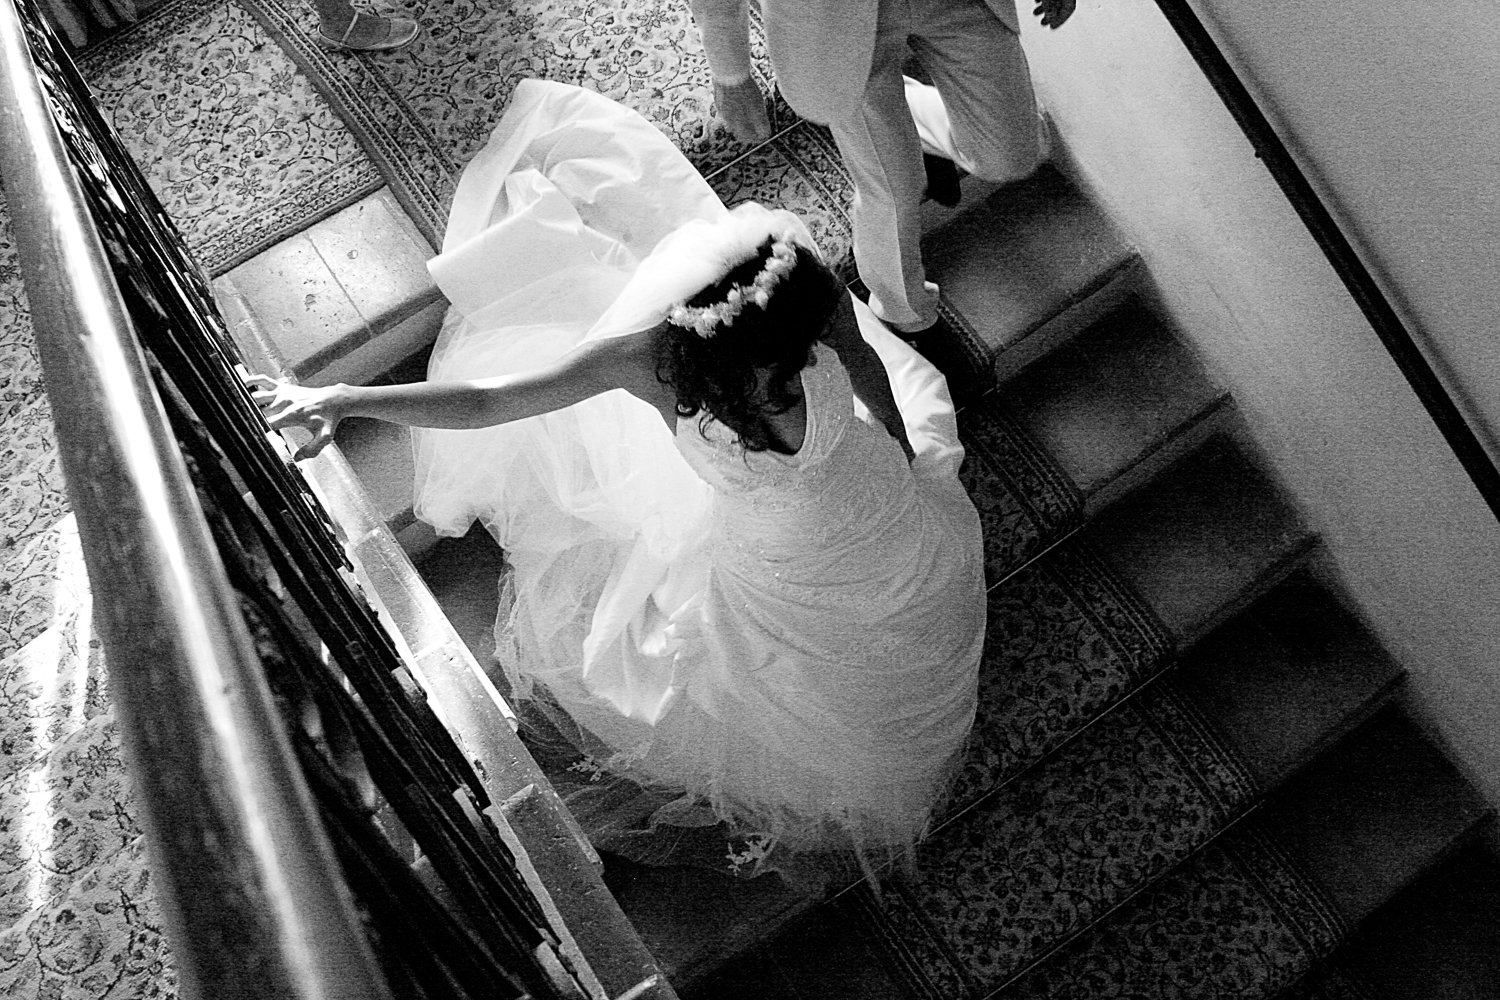 - The best wedding photography is when you forget there is a camera around -TJ